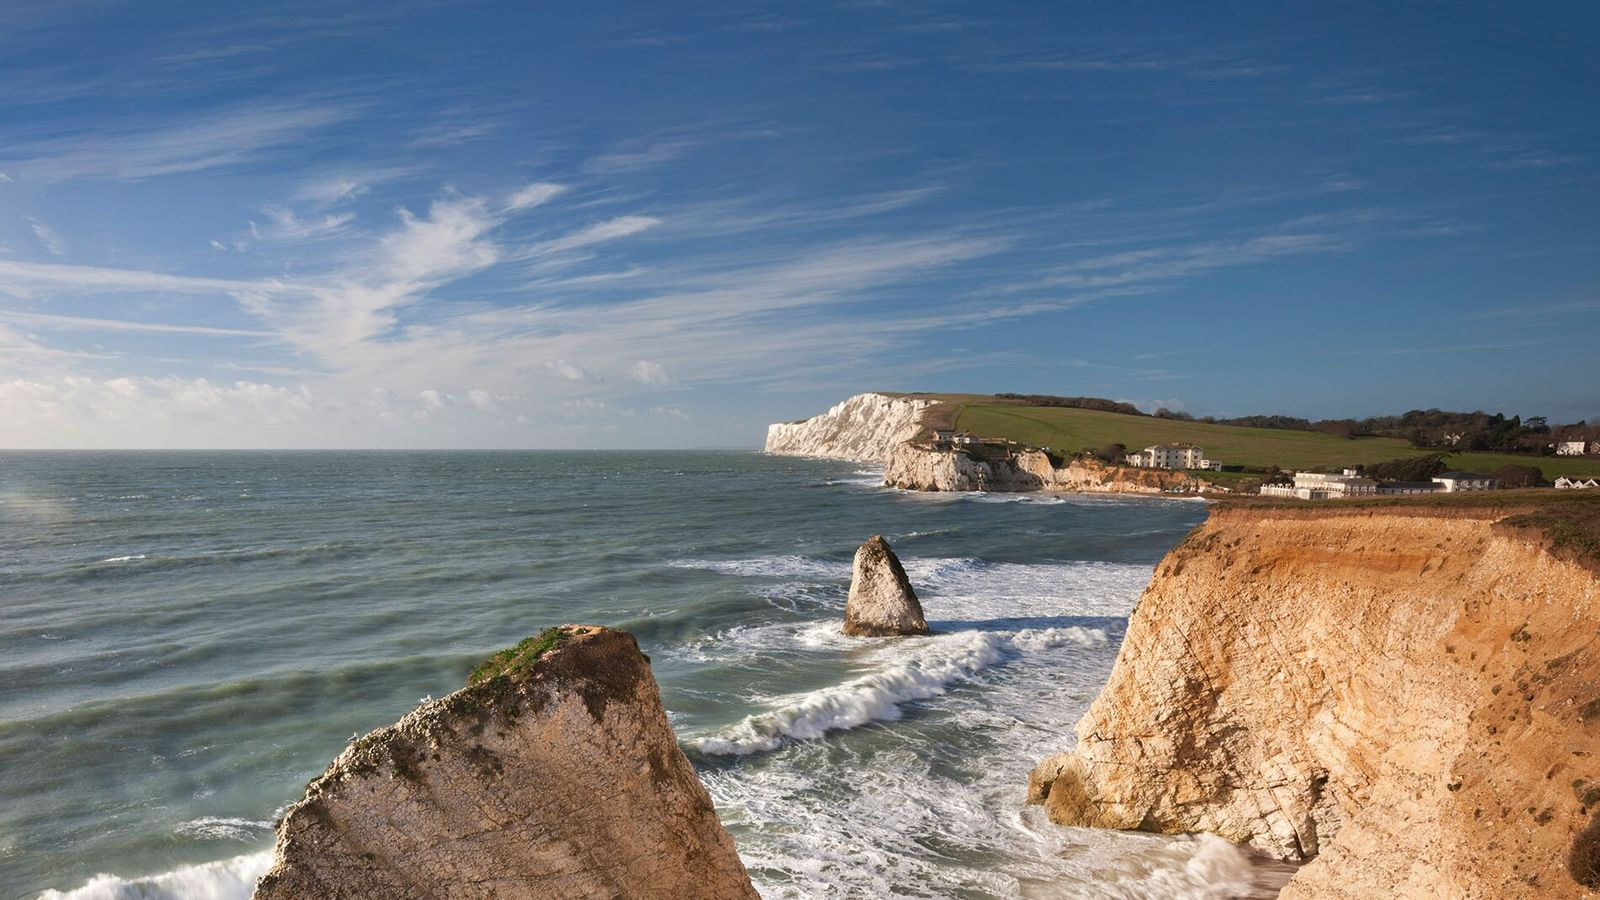 The clifftops over Freshwater Bay on the Isle of Wight provide impressive views of the landscape.